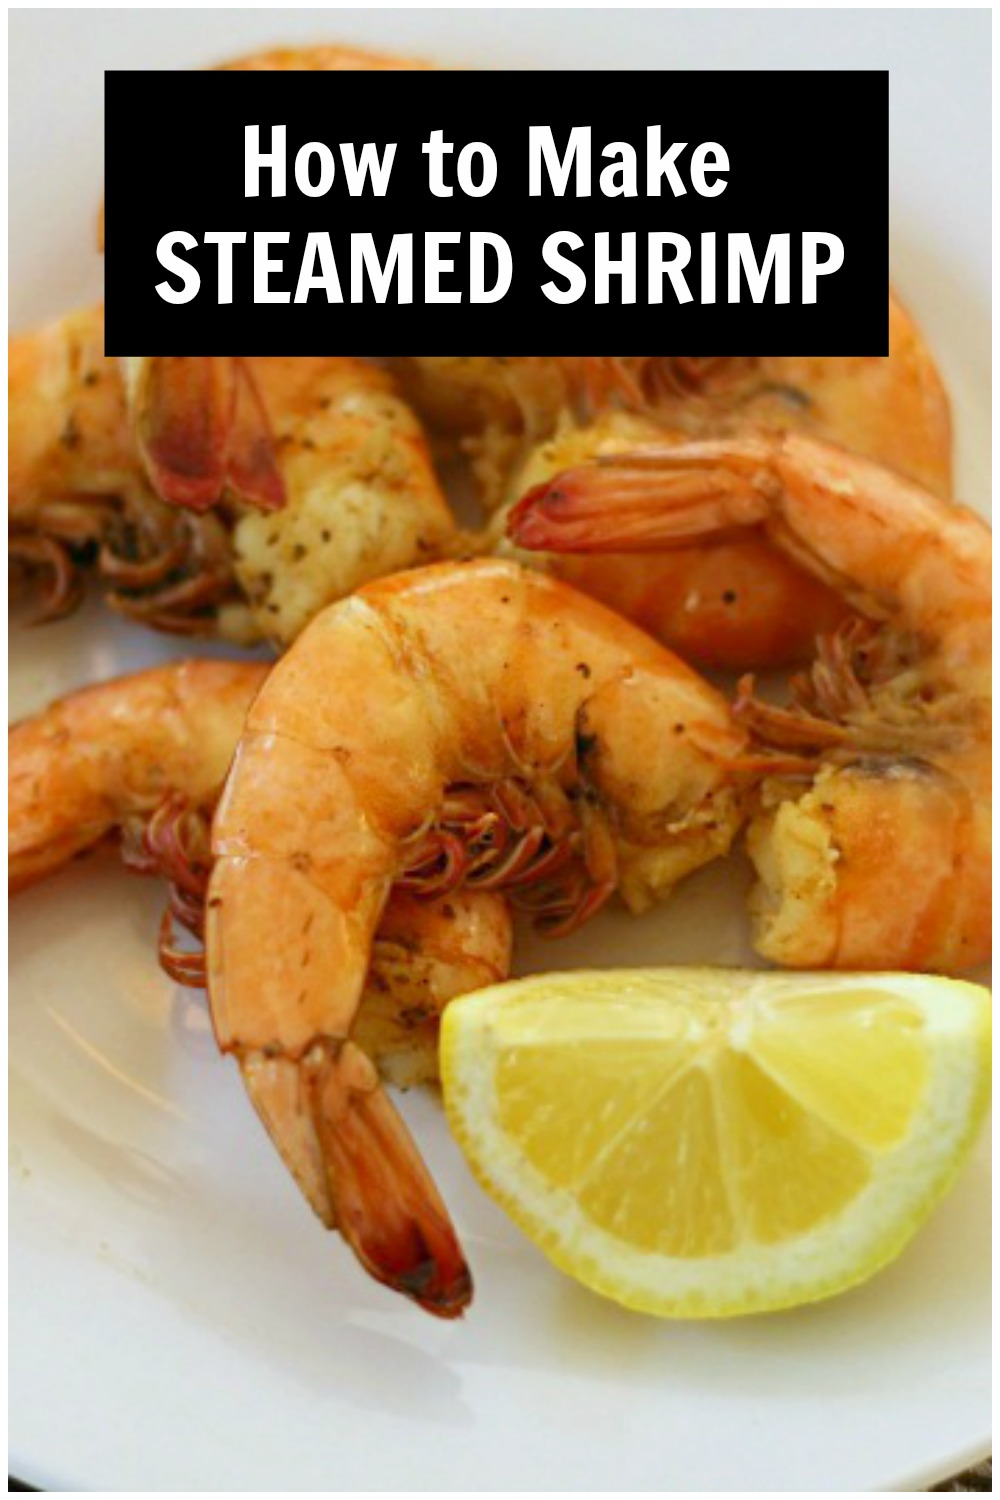 Steamed shrimp and lemon wedge